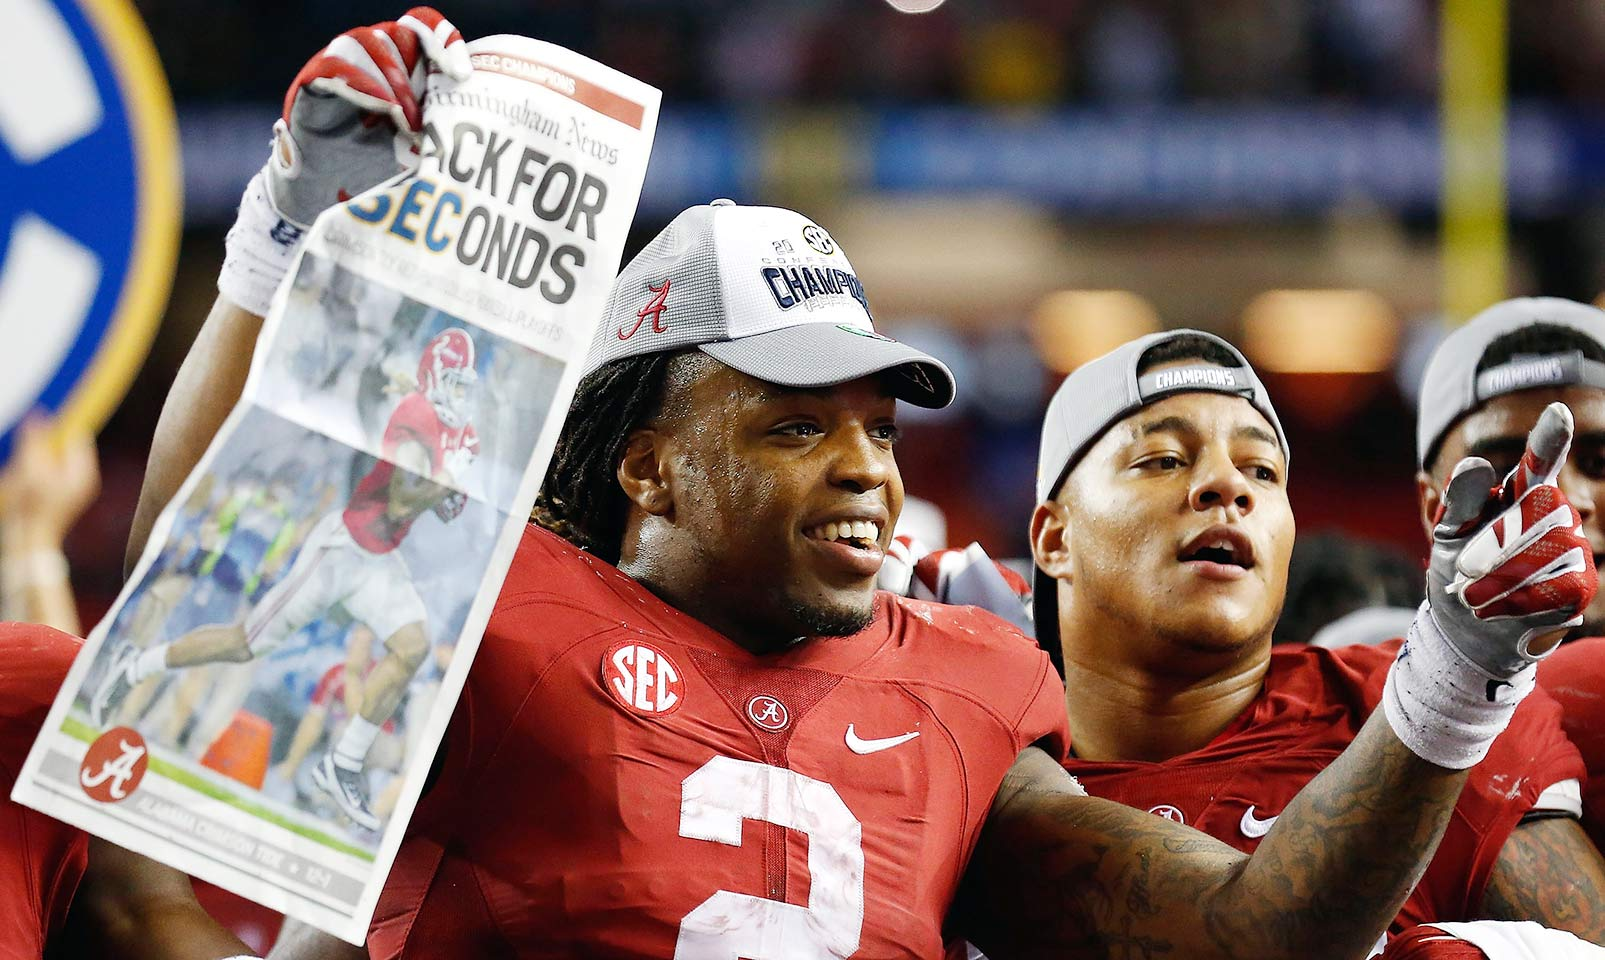 Alabama 29, Florida 15: The Crimson Tide repeated as SEC champions with a victory over the Gators. Florida's offense got nothing going, including just 15 yards on the ground. Alabama found that giving the ball to Henry was its best option again, as he carried 44 times for 189 yards.